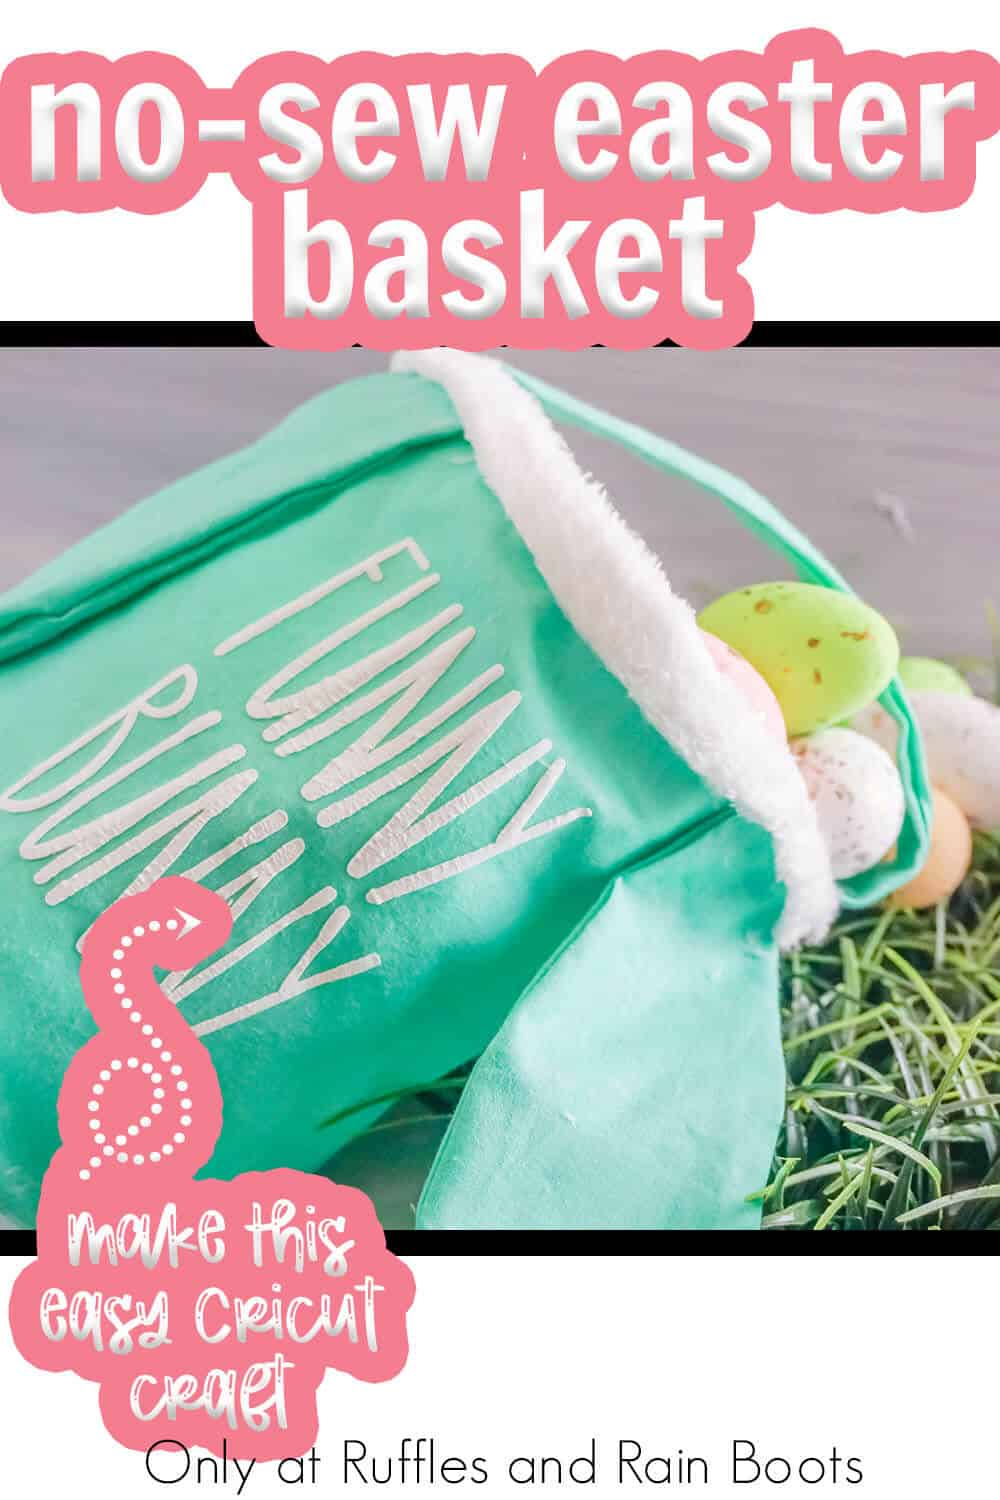 diy easter no-sew basket craft for cricut or silhouette with text which reads no-sew easter basket make this easy cricut craft